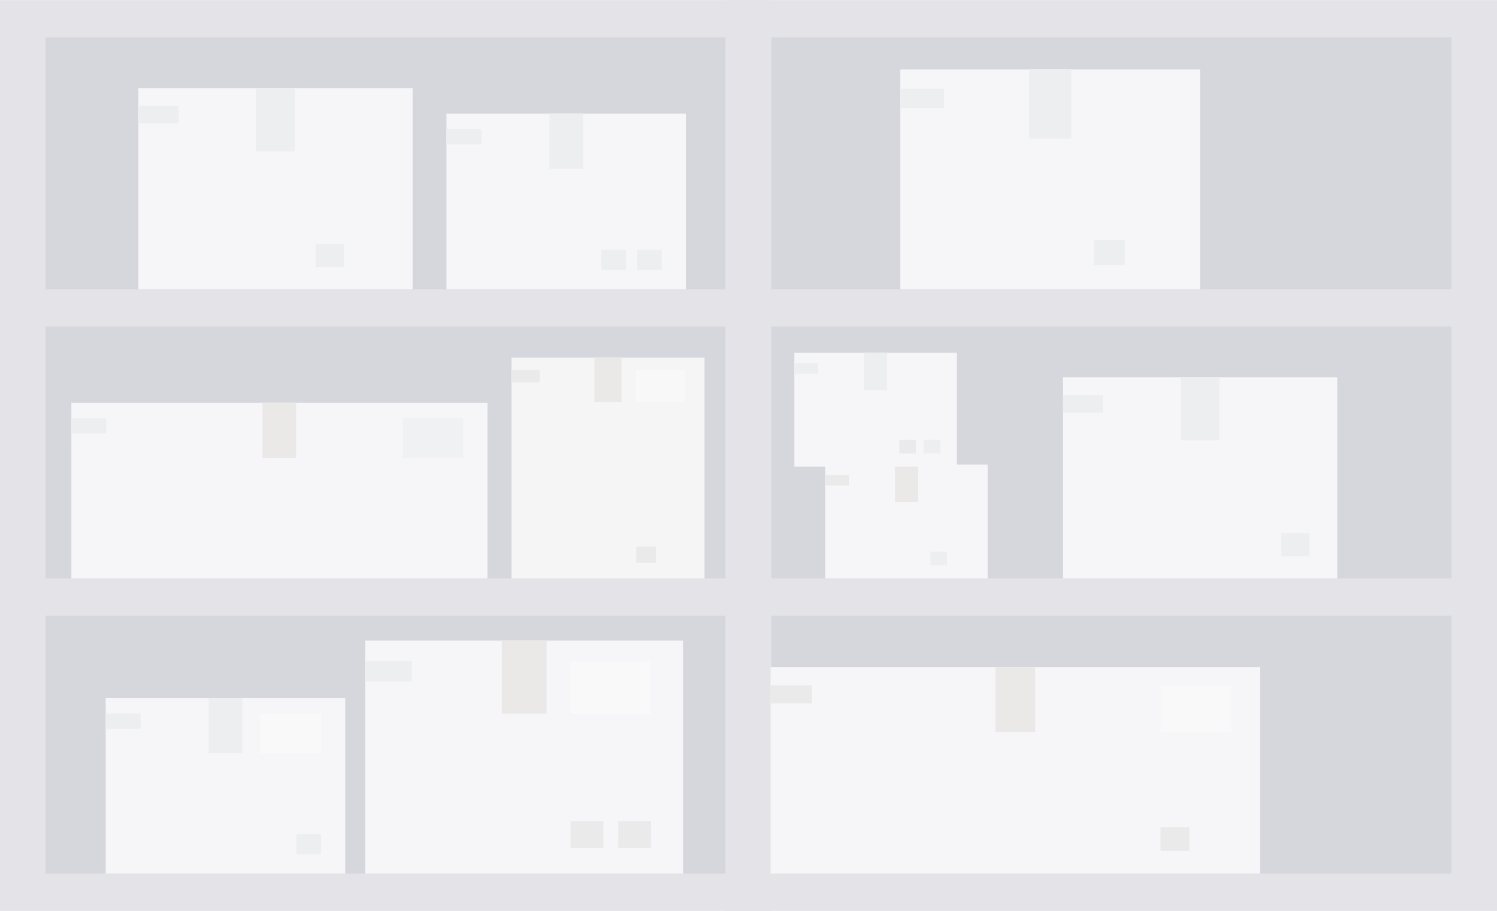 style storage images in PNG and SVG | Icons8 Illustrations